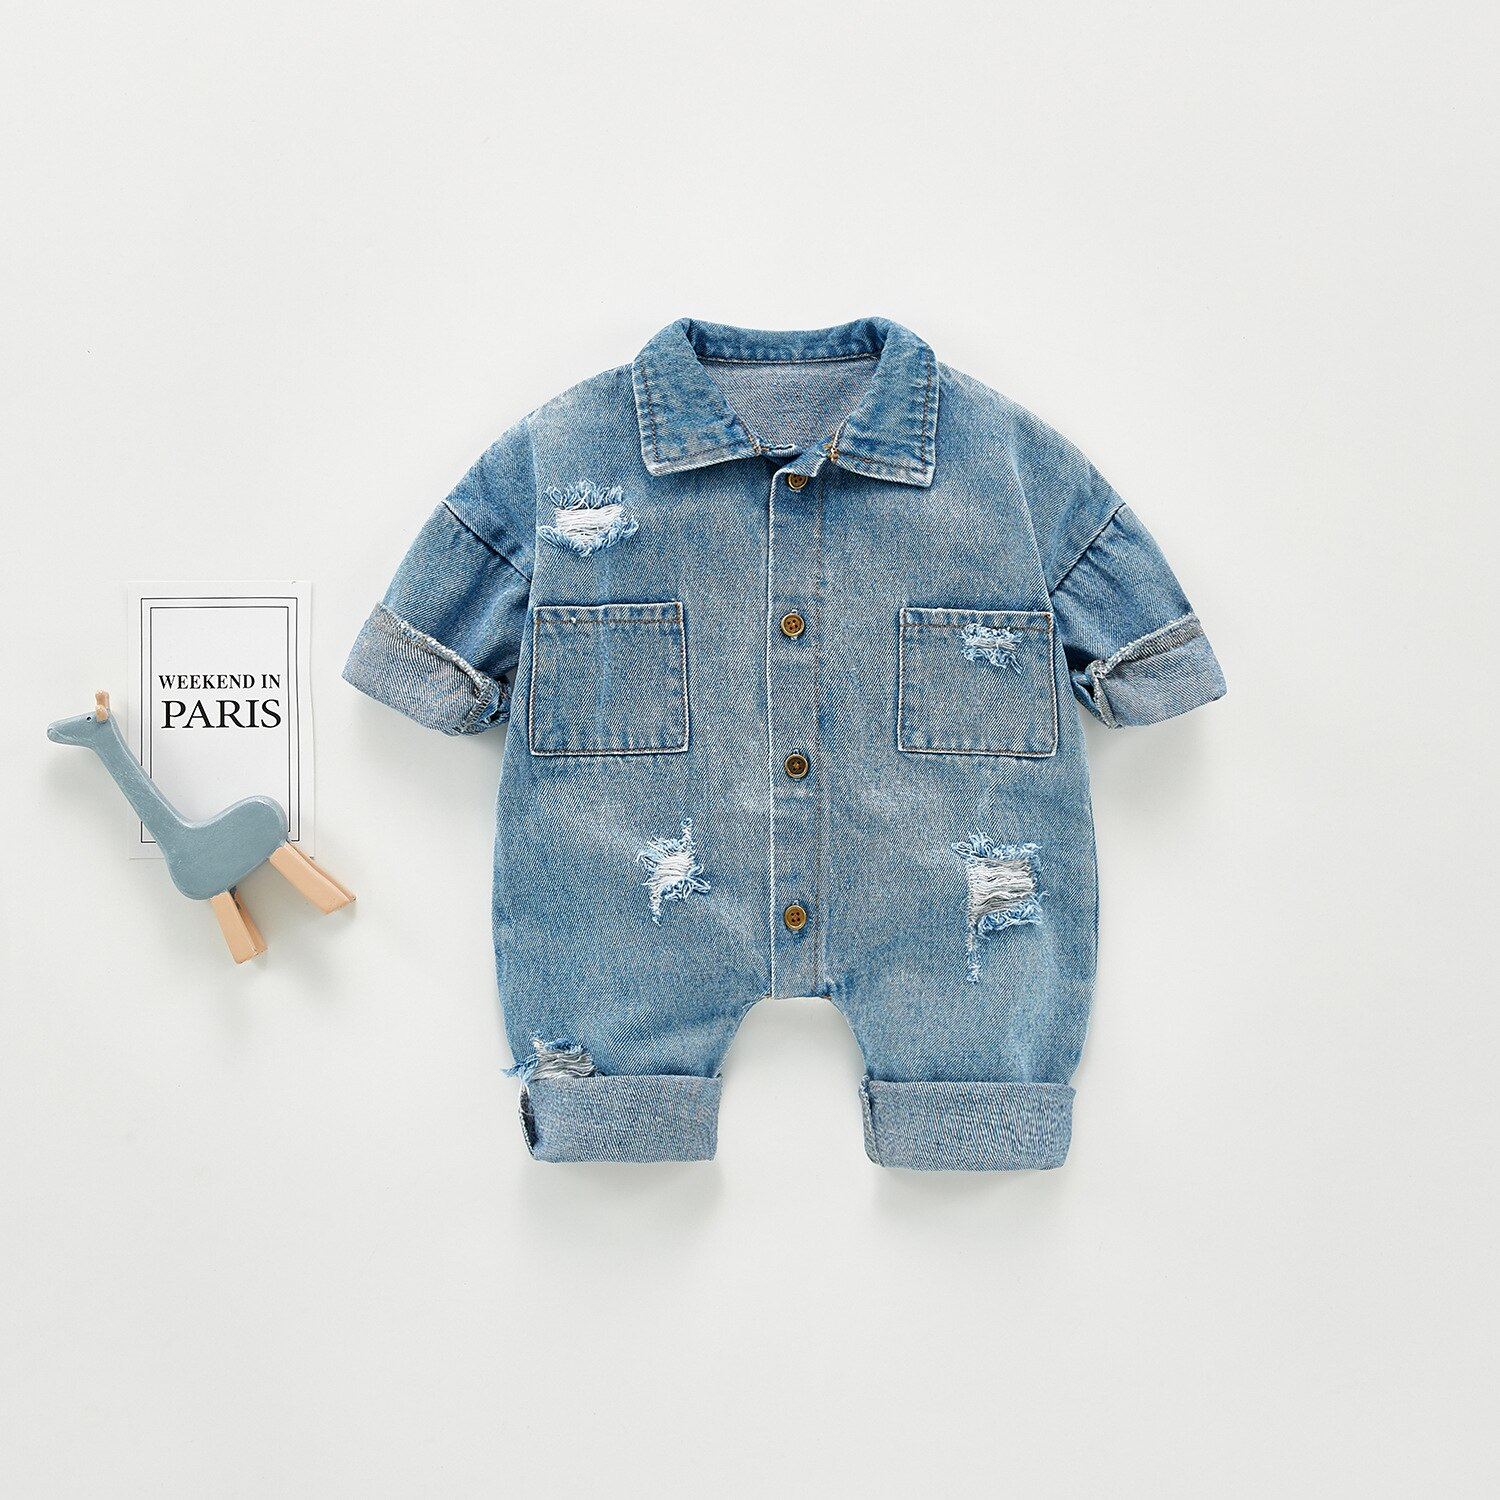 Yg Brand Spring And Autumn New Baby Fashion Style Denim Jumpsuit, Boys And Girls Lapel Long Sleeve C